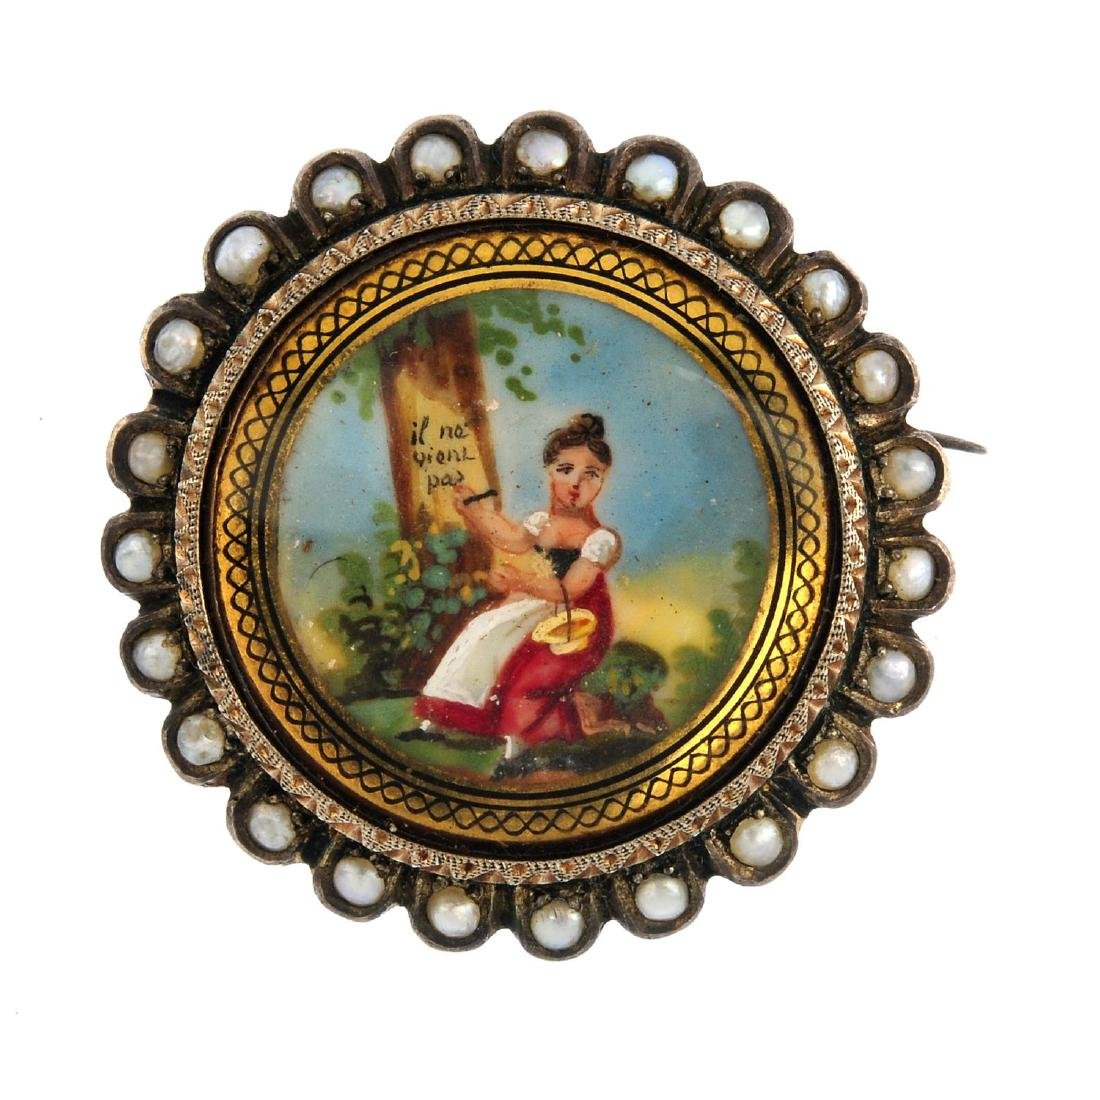 An early 20th century continental brooch. Depicting a